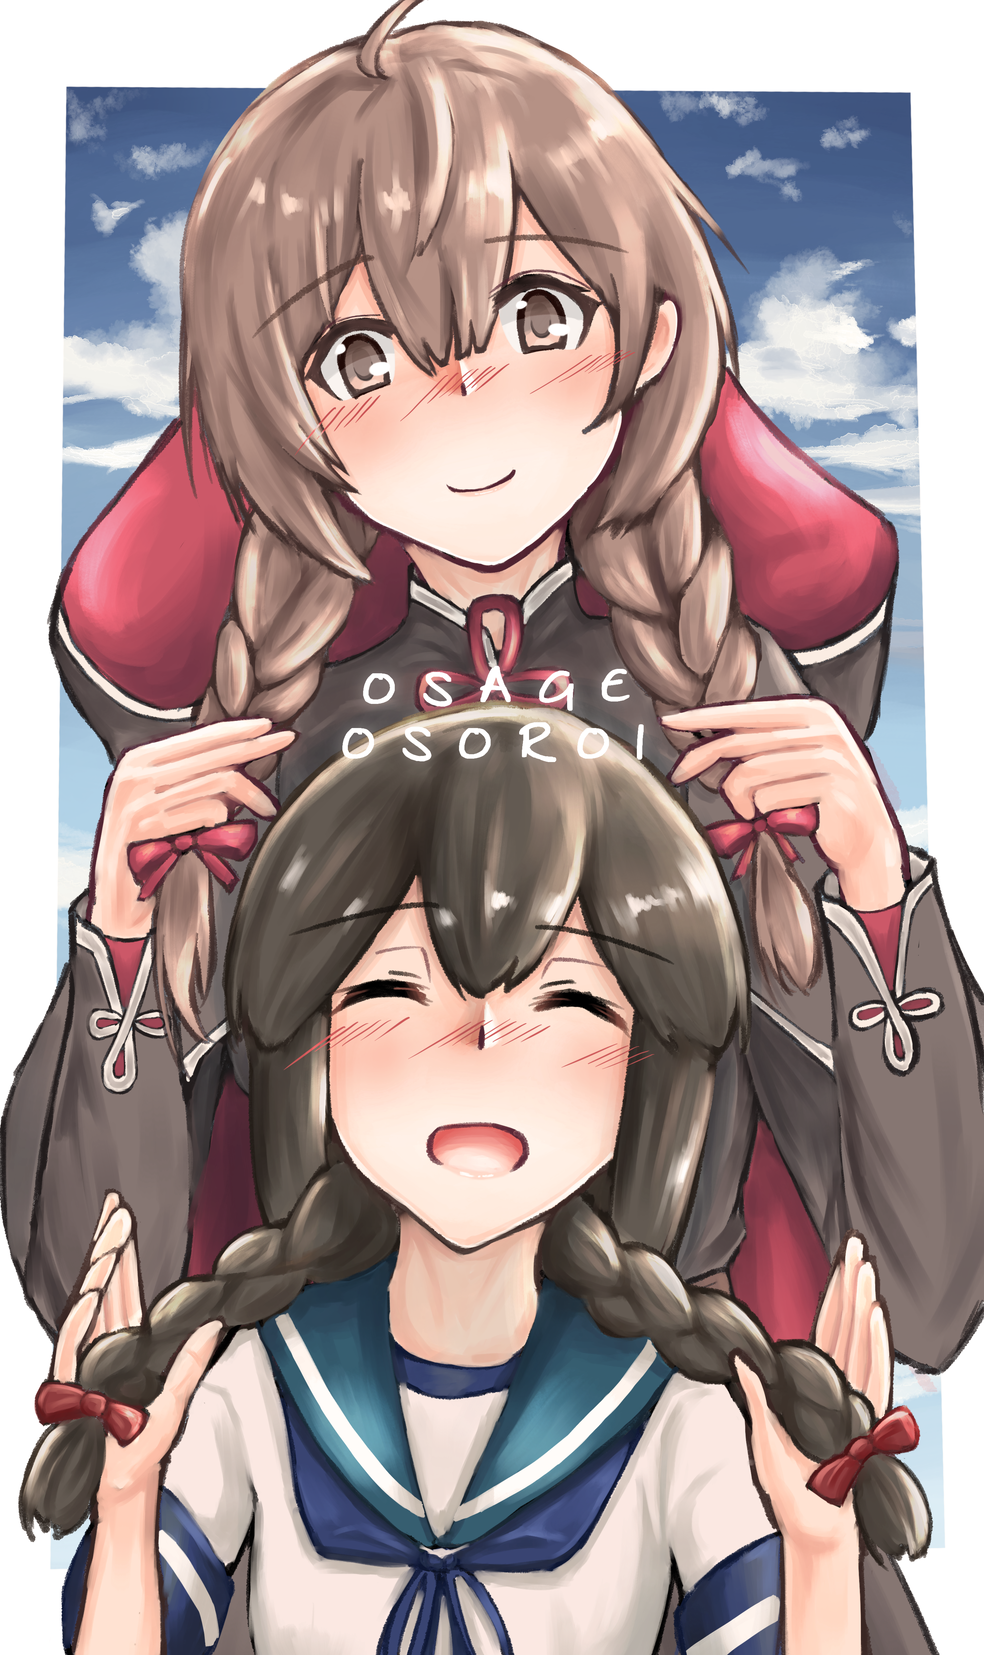 2girls black_capelet black_hair blue_sailor_collar blue_sky braid brown_eyes brown_hair capelet closed_eyes clouds commentary_request highres hood hooded_capelet isonami_(kantai_collection) kantai_collection long_hair multiple_girls owada_(kousonhuchi) red_ribbon ribbon romaji_text sailor_collar school_uniform serafuku shinshuu_maru_(kantai_collection) sidelocks sky smile translation_request twin_braids upper_body